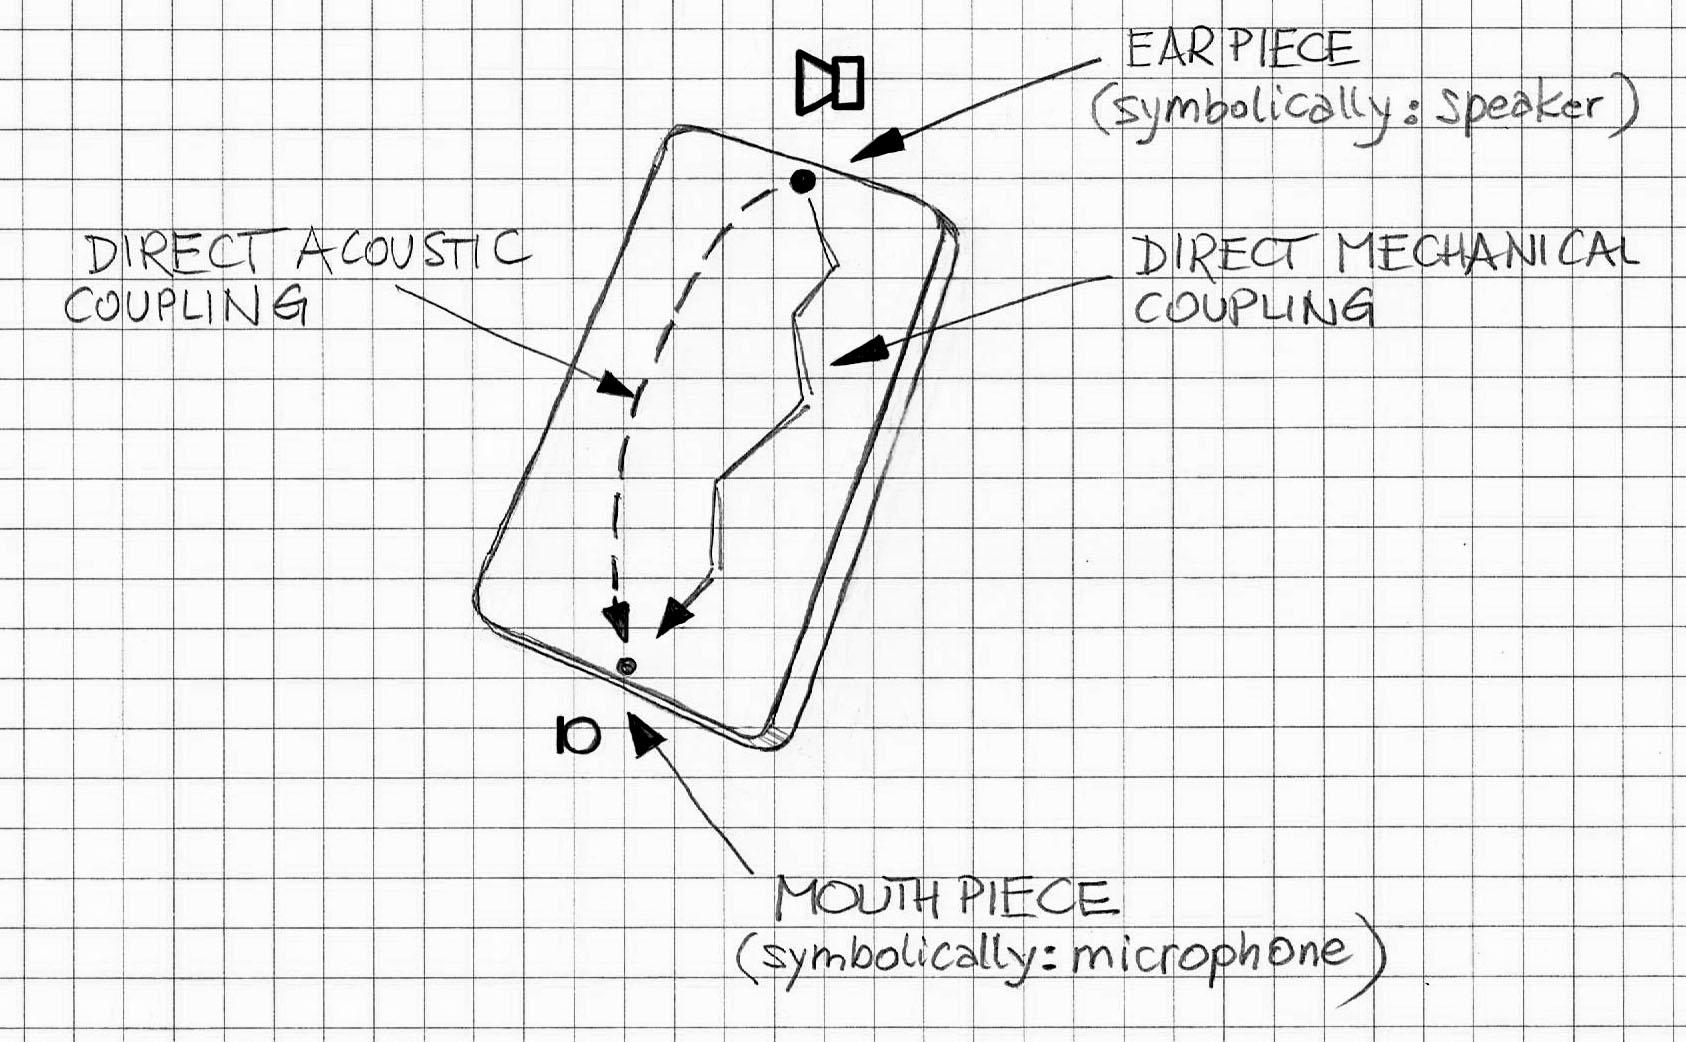 mobile-direct-coupling